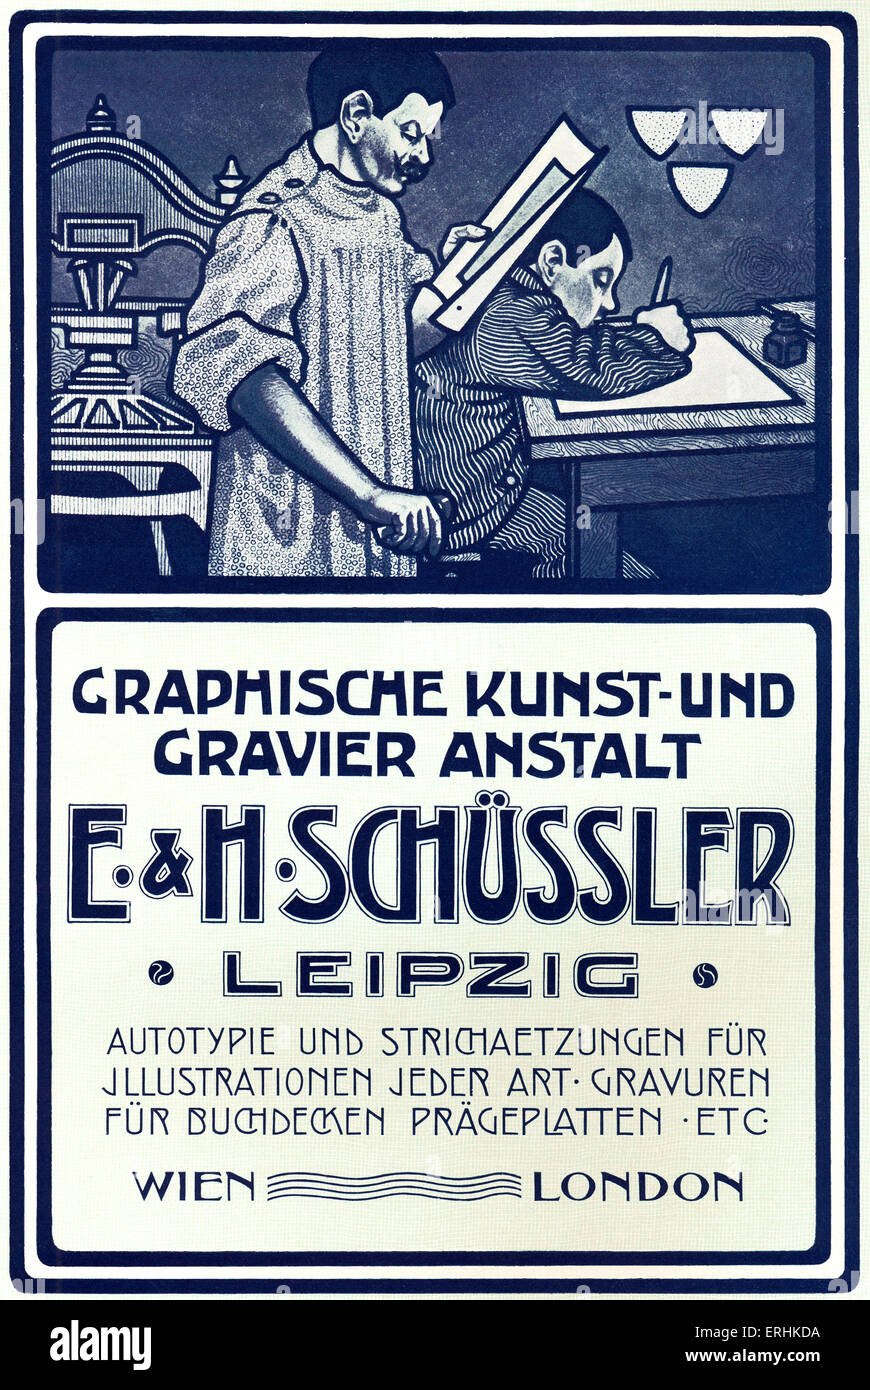 Graphic Art and typesetting firm  advertisement from 1902  printers ' catalogue. Graphische kunst und gravier - Stock Image